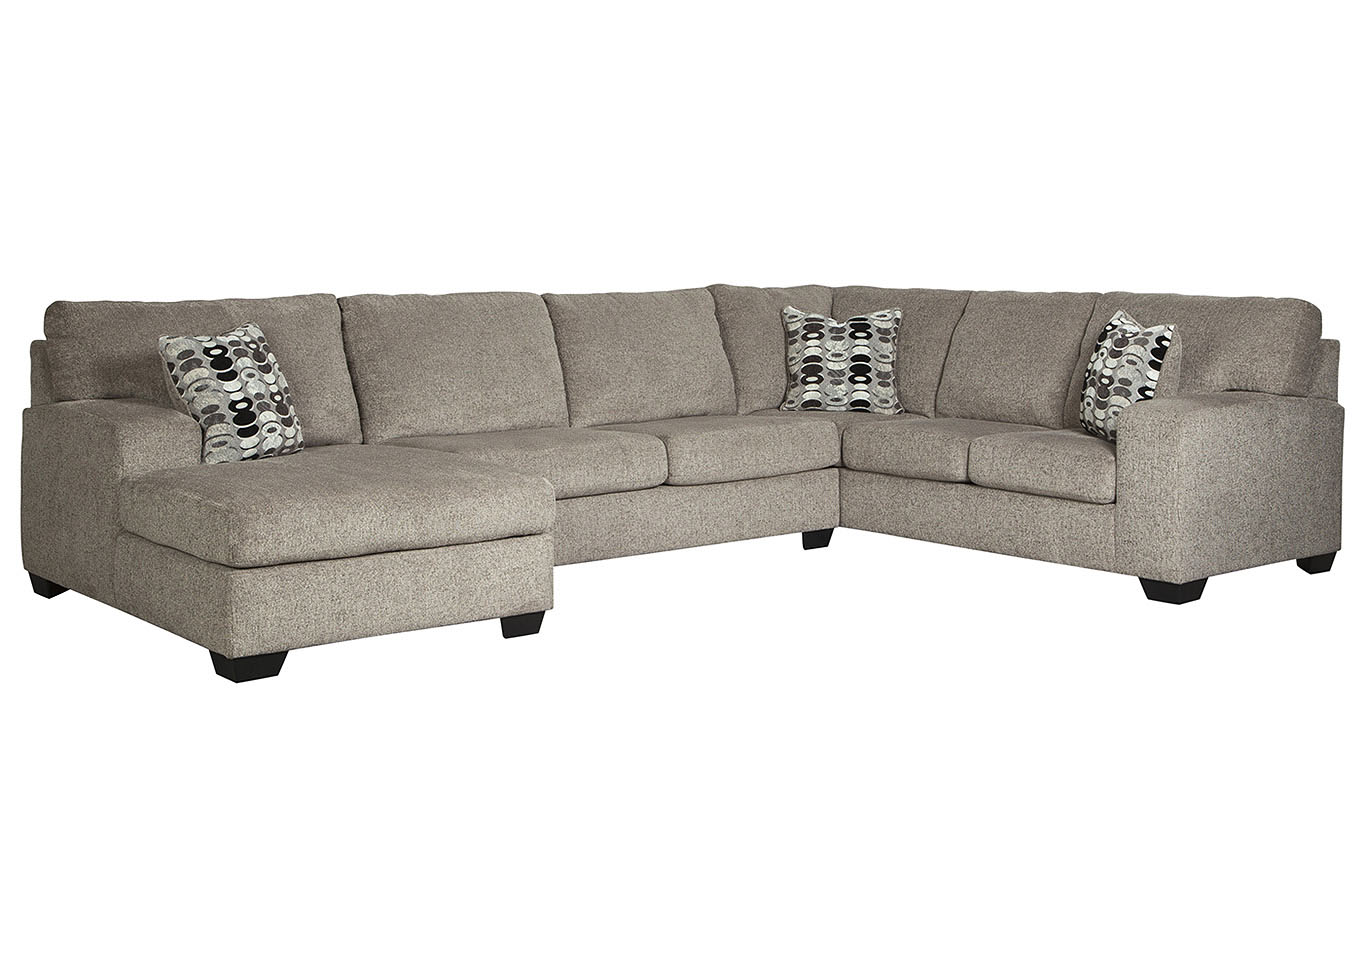 Ballinasloe Platinum LAF Chaise Sectional,Signature Design By Ashley